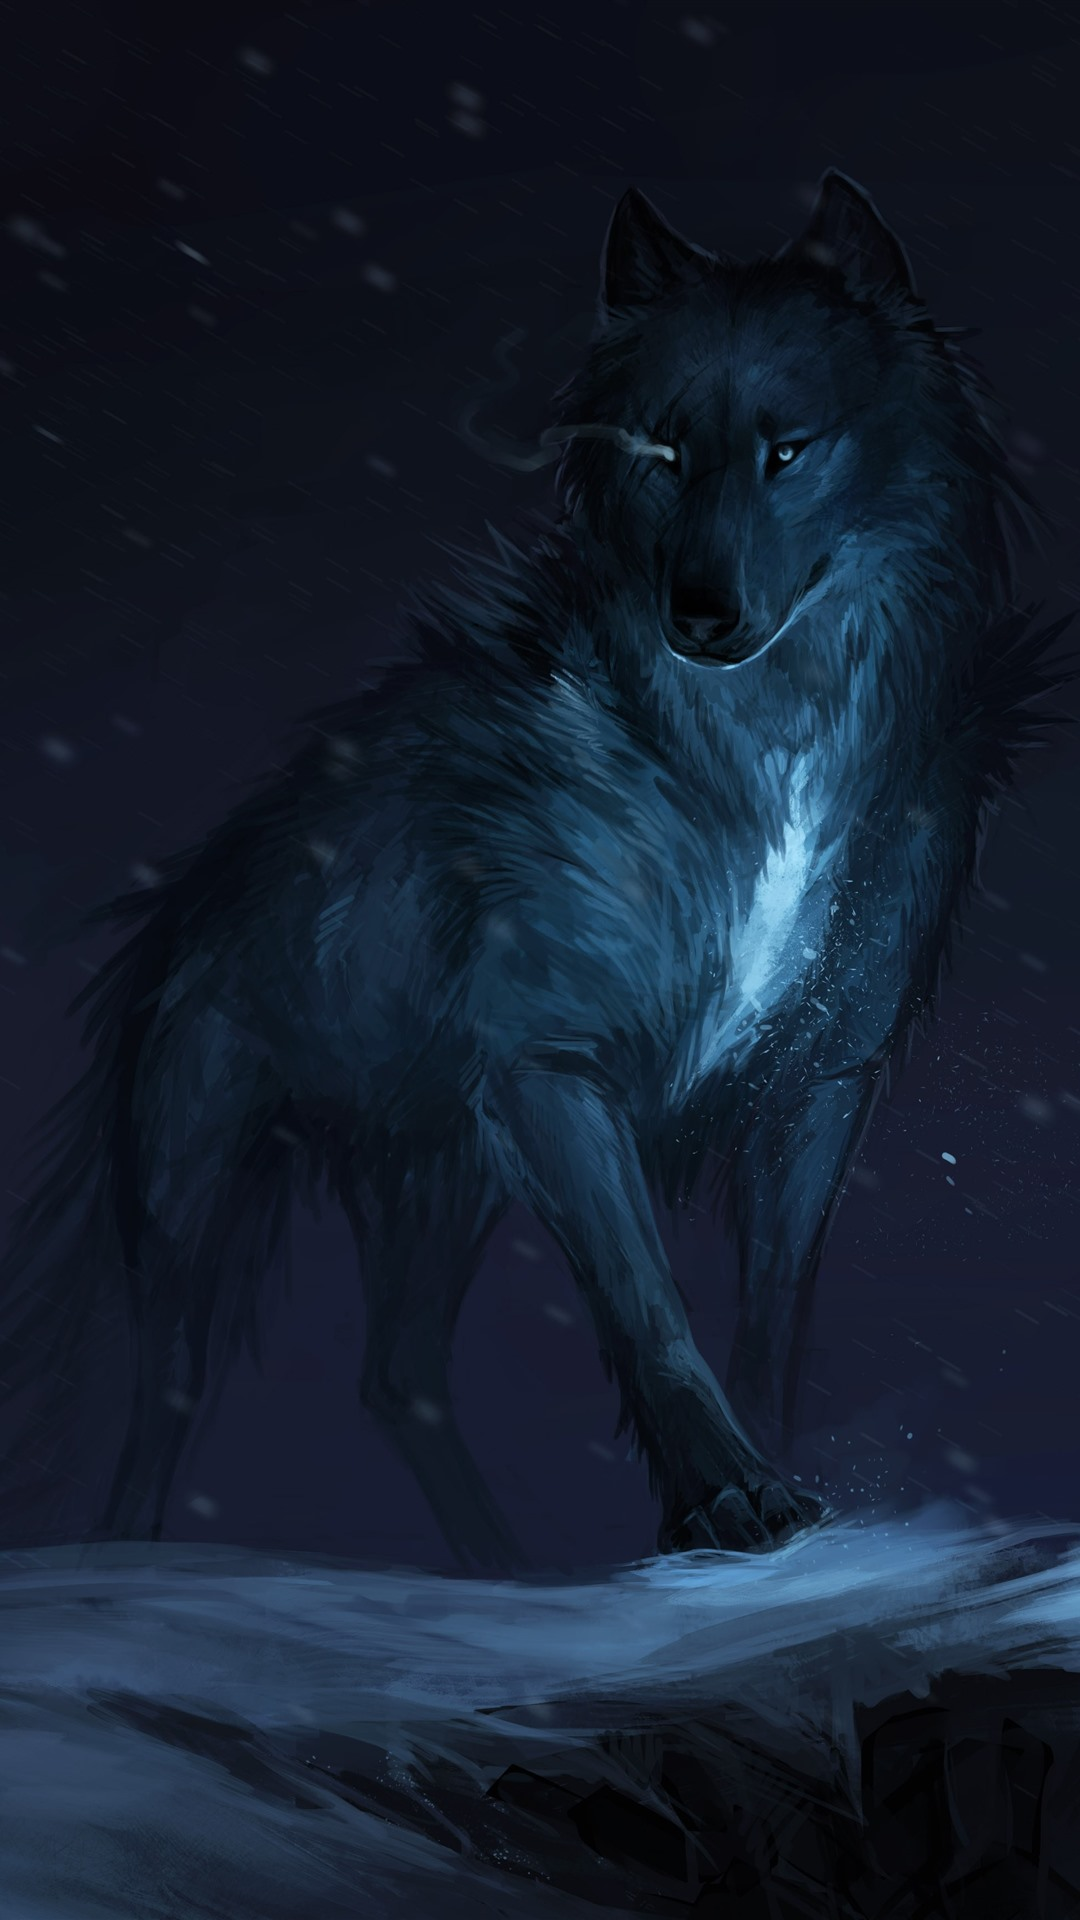 Black Wolf Night Art Picture 1242x2688 Iphone Xs Max Wallpaper